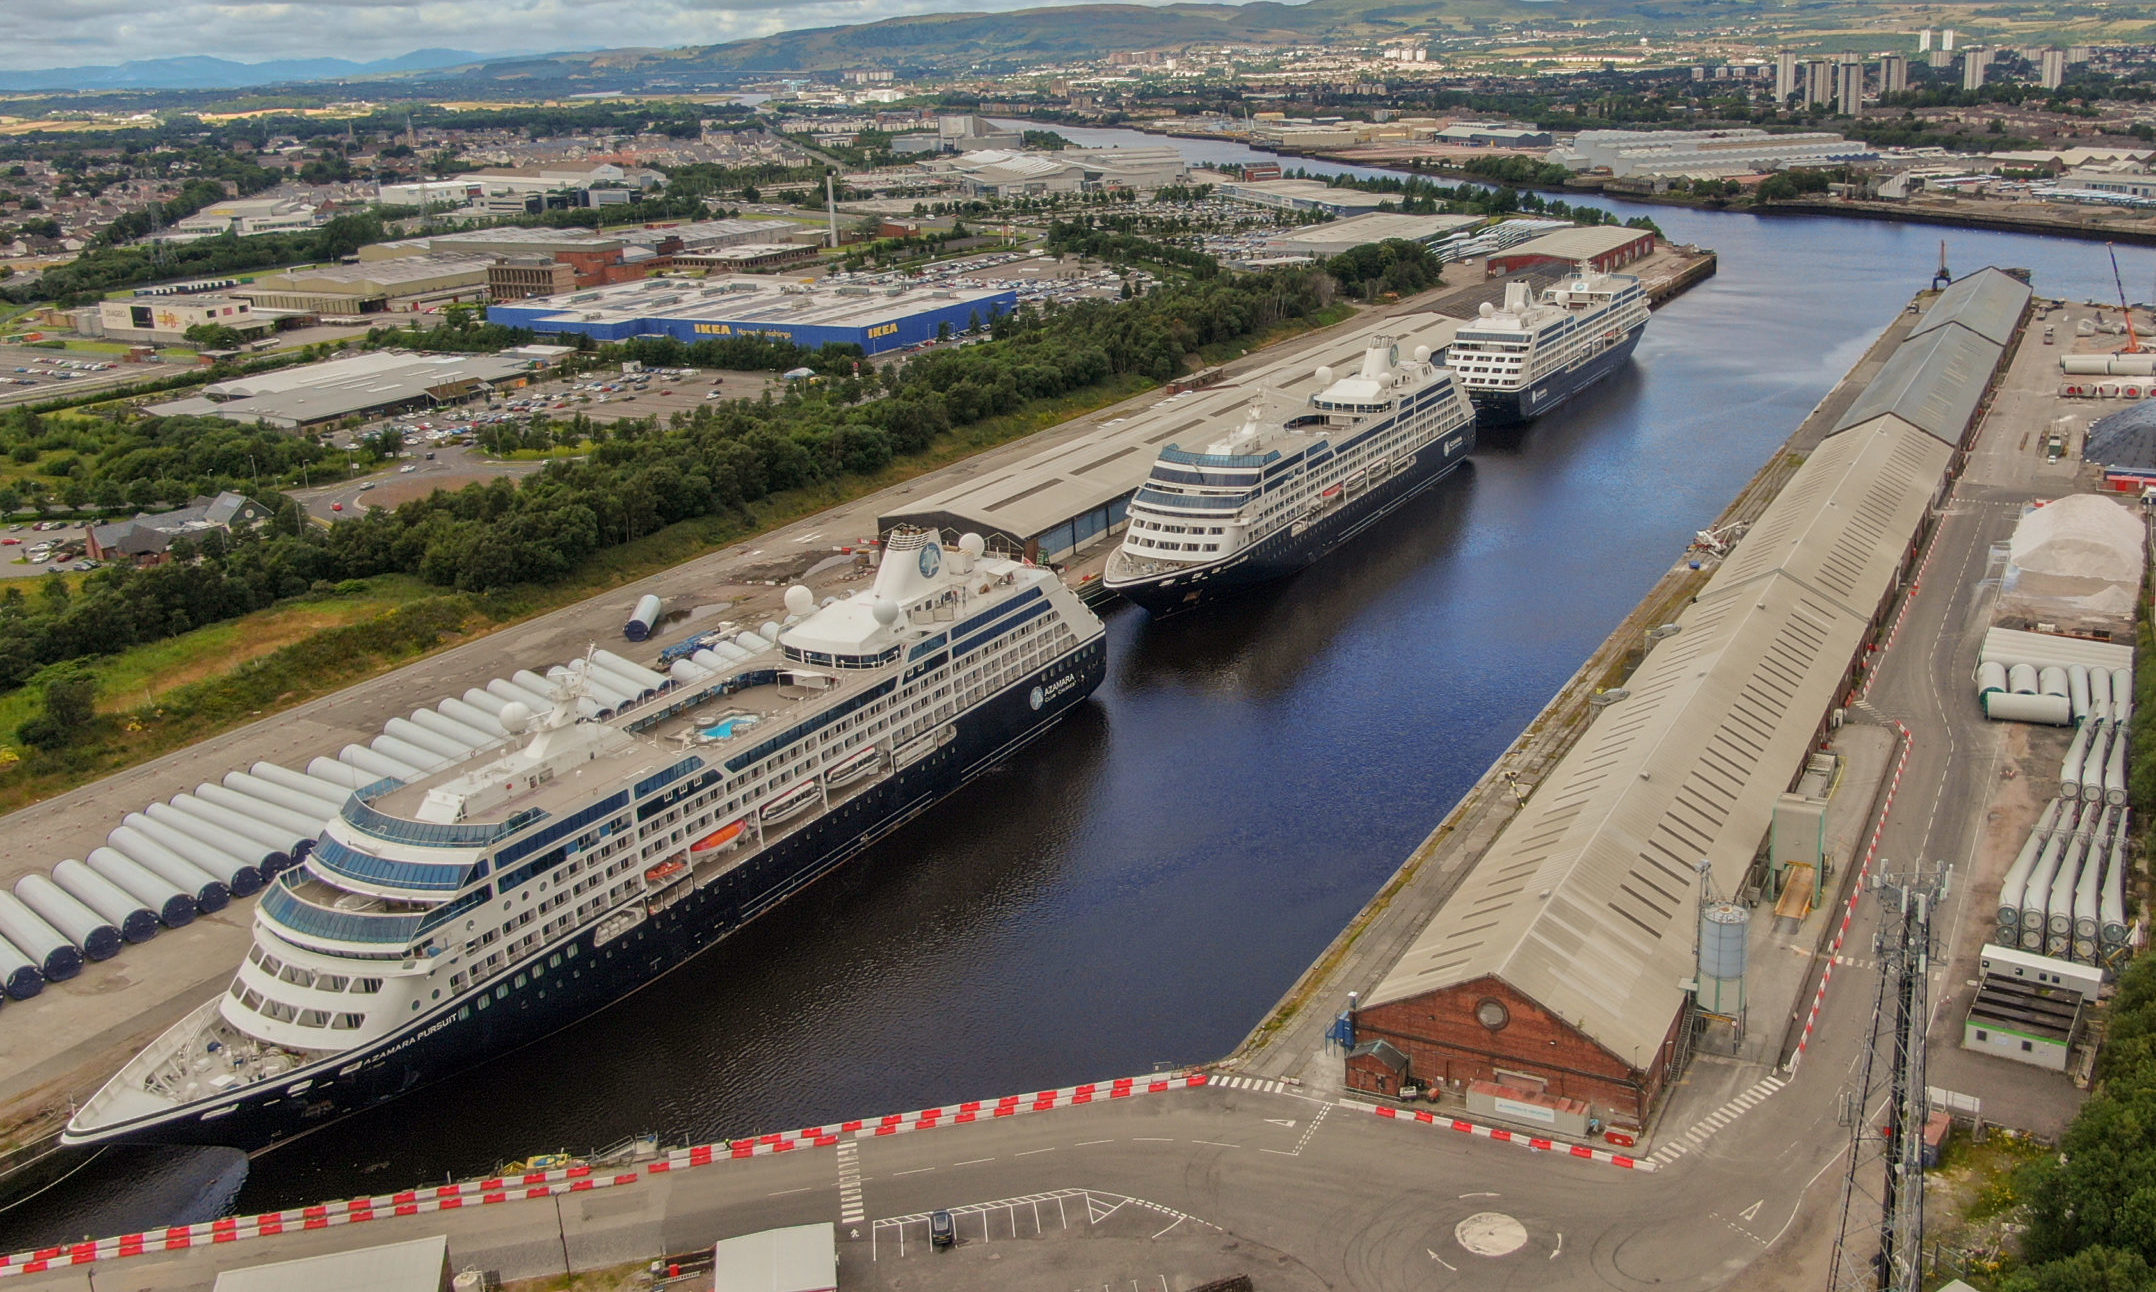 Azamara Quest (middle) with sister ships Journey and Pursuit lined up at King George V Dock in Glasgow